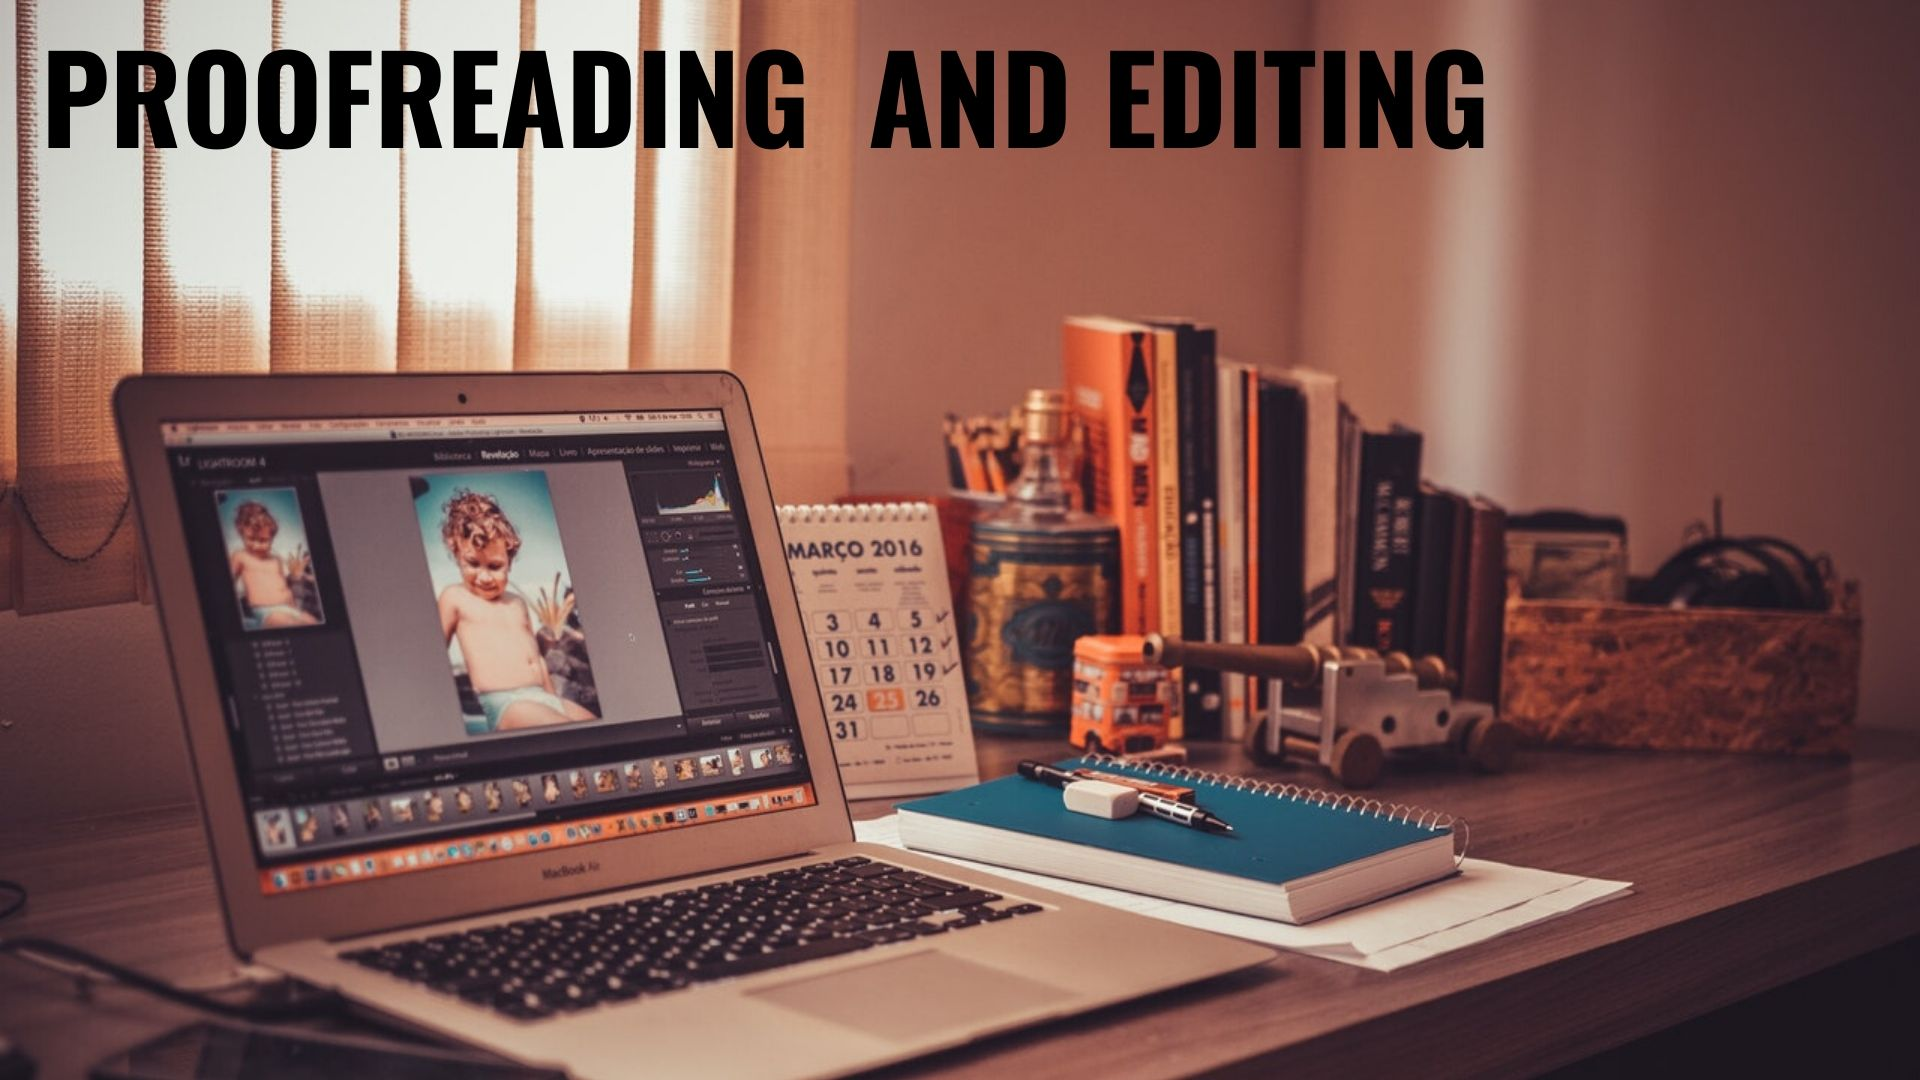 I Will Proofread And Edit Up To 1000 Words Article Expertly